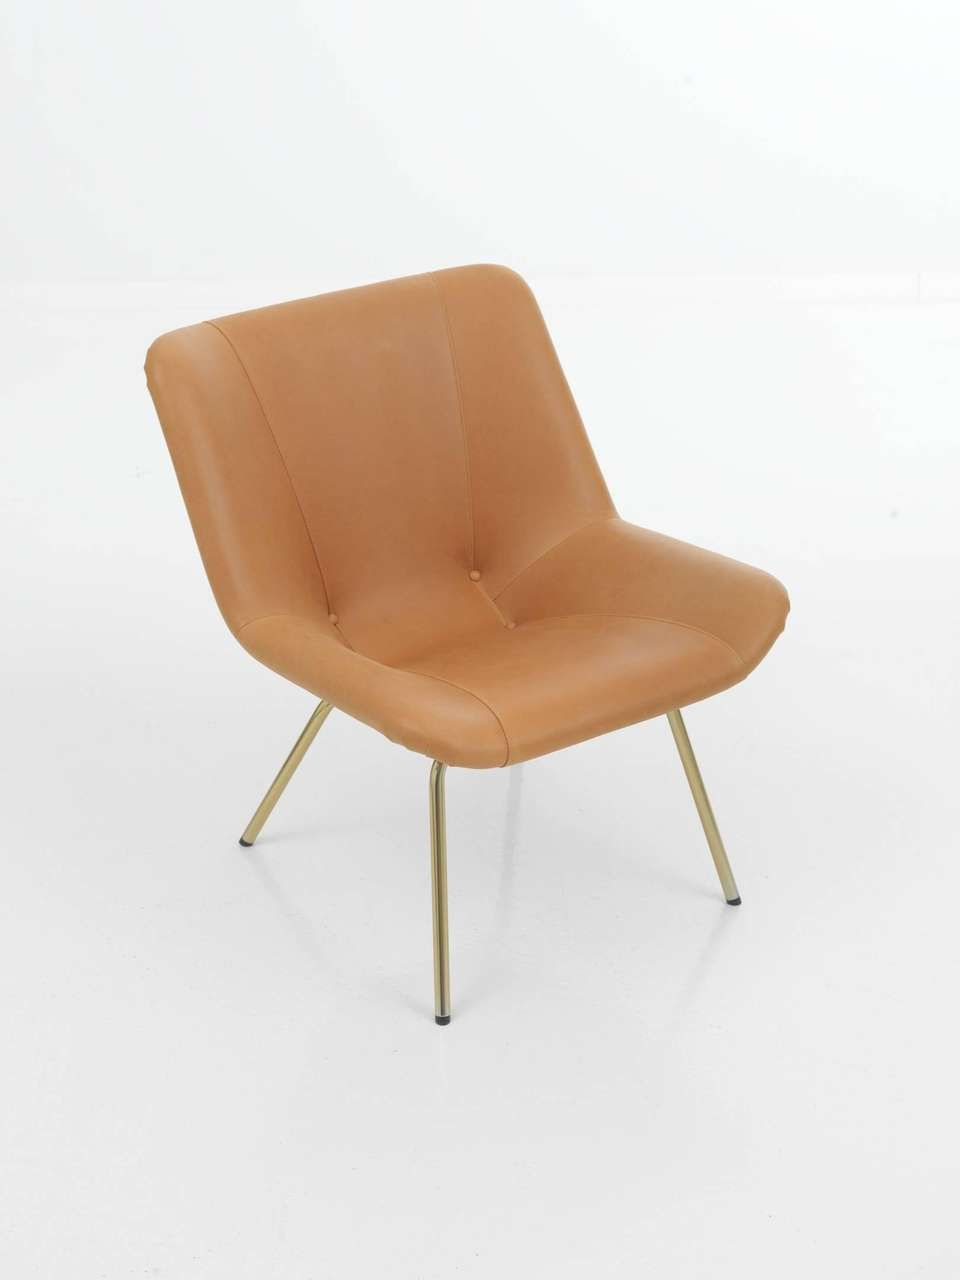 For sale on 1stdibs the lehti chair combines an upholstered seat with legs of metal tubing although it was designed already in 1956 this chair is of